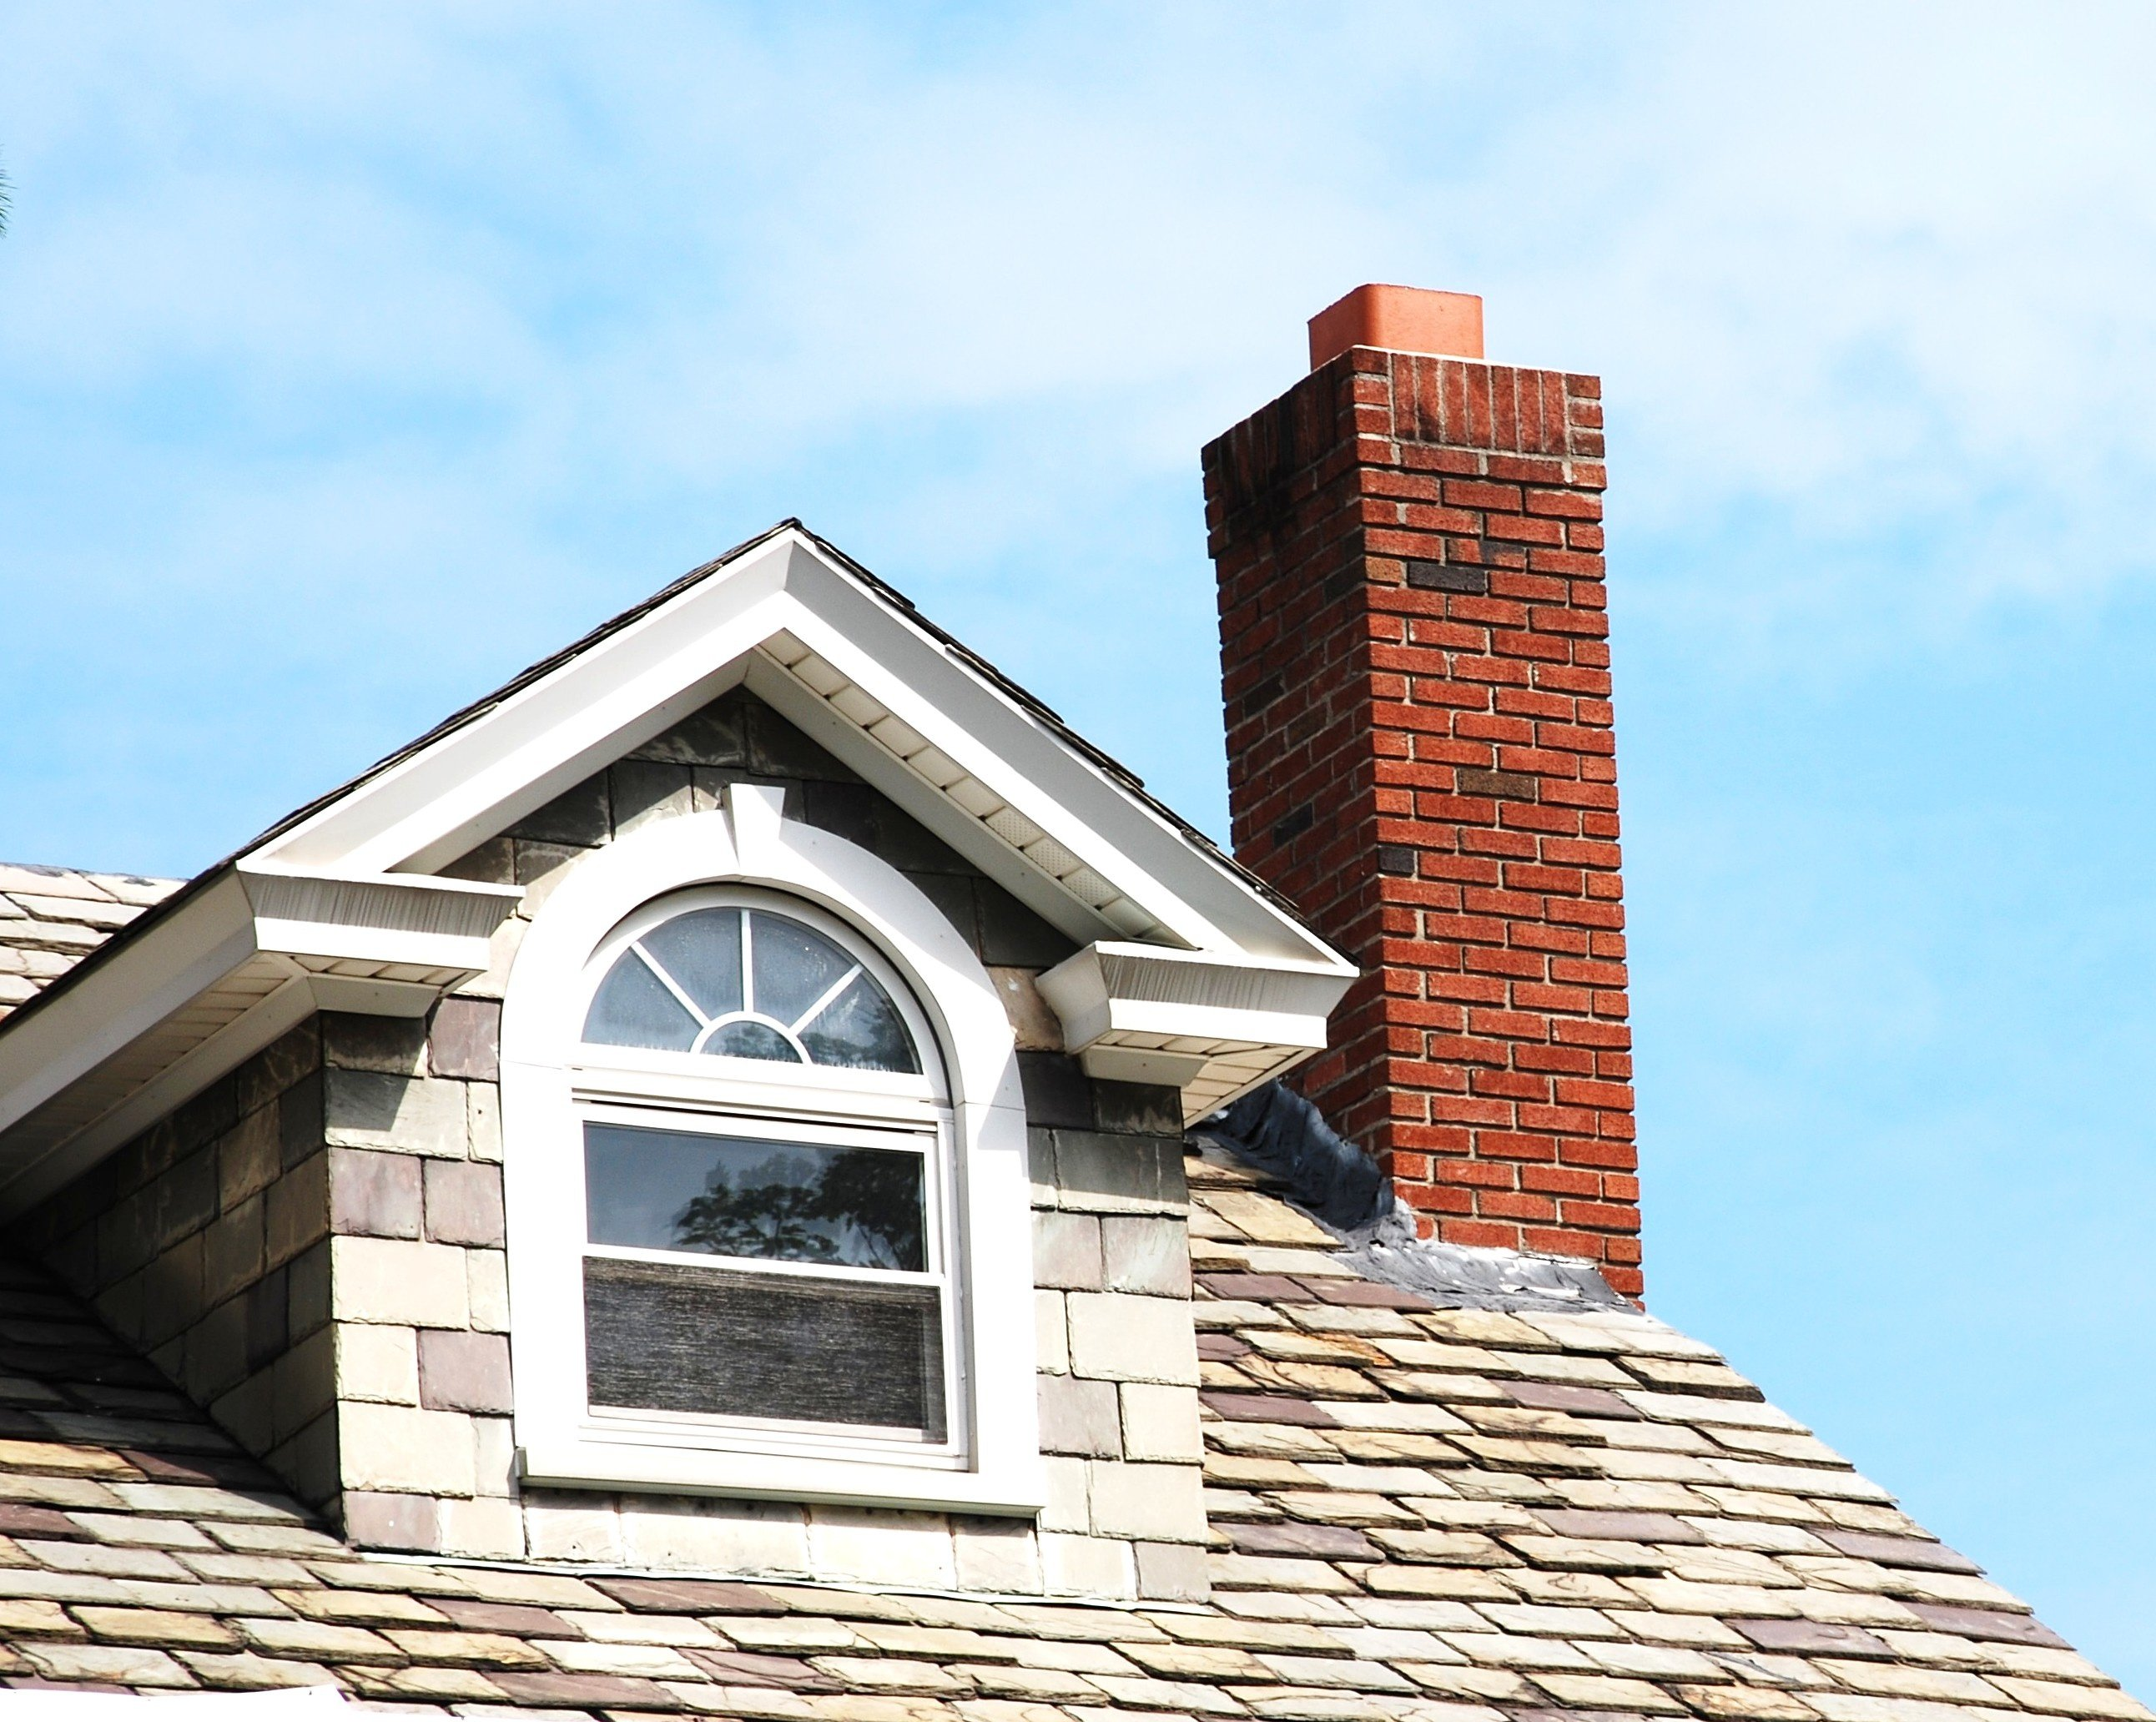 roof with a chimney missing a chimney cap